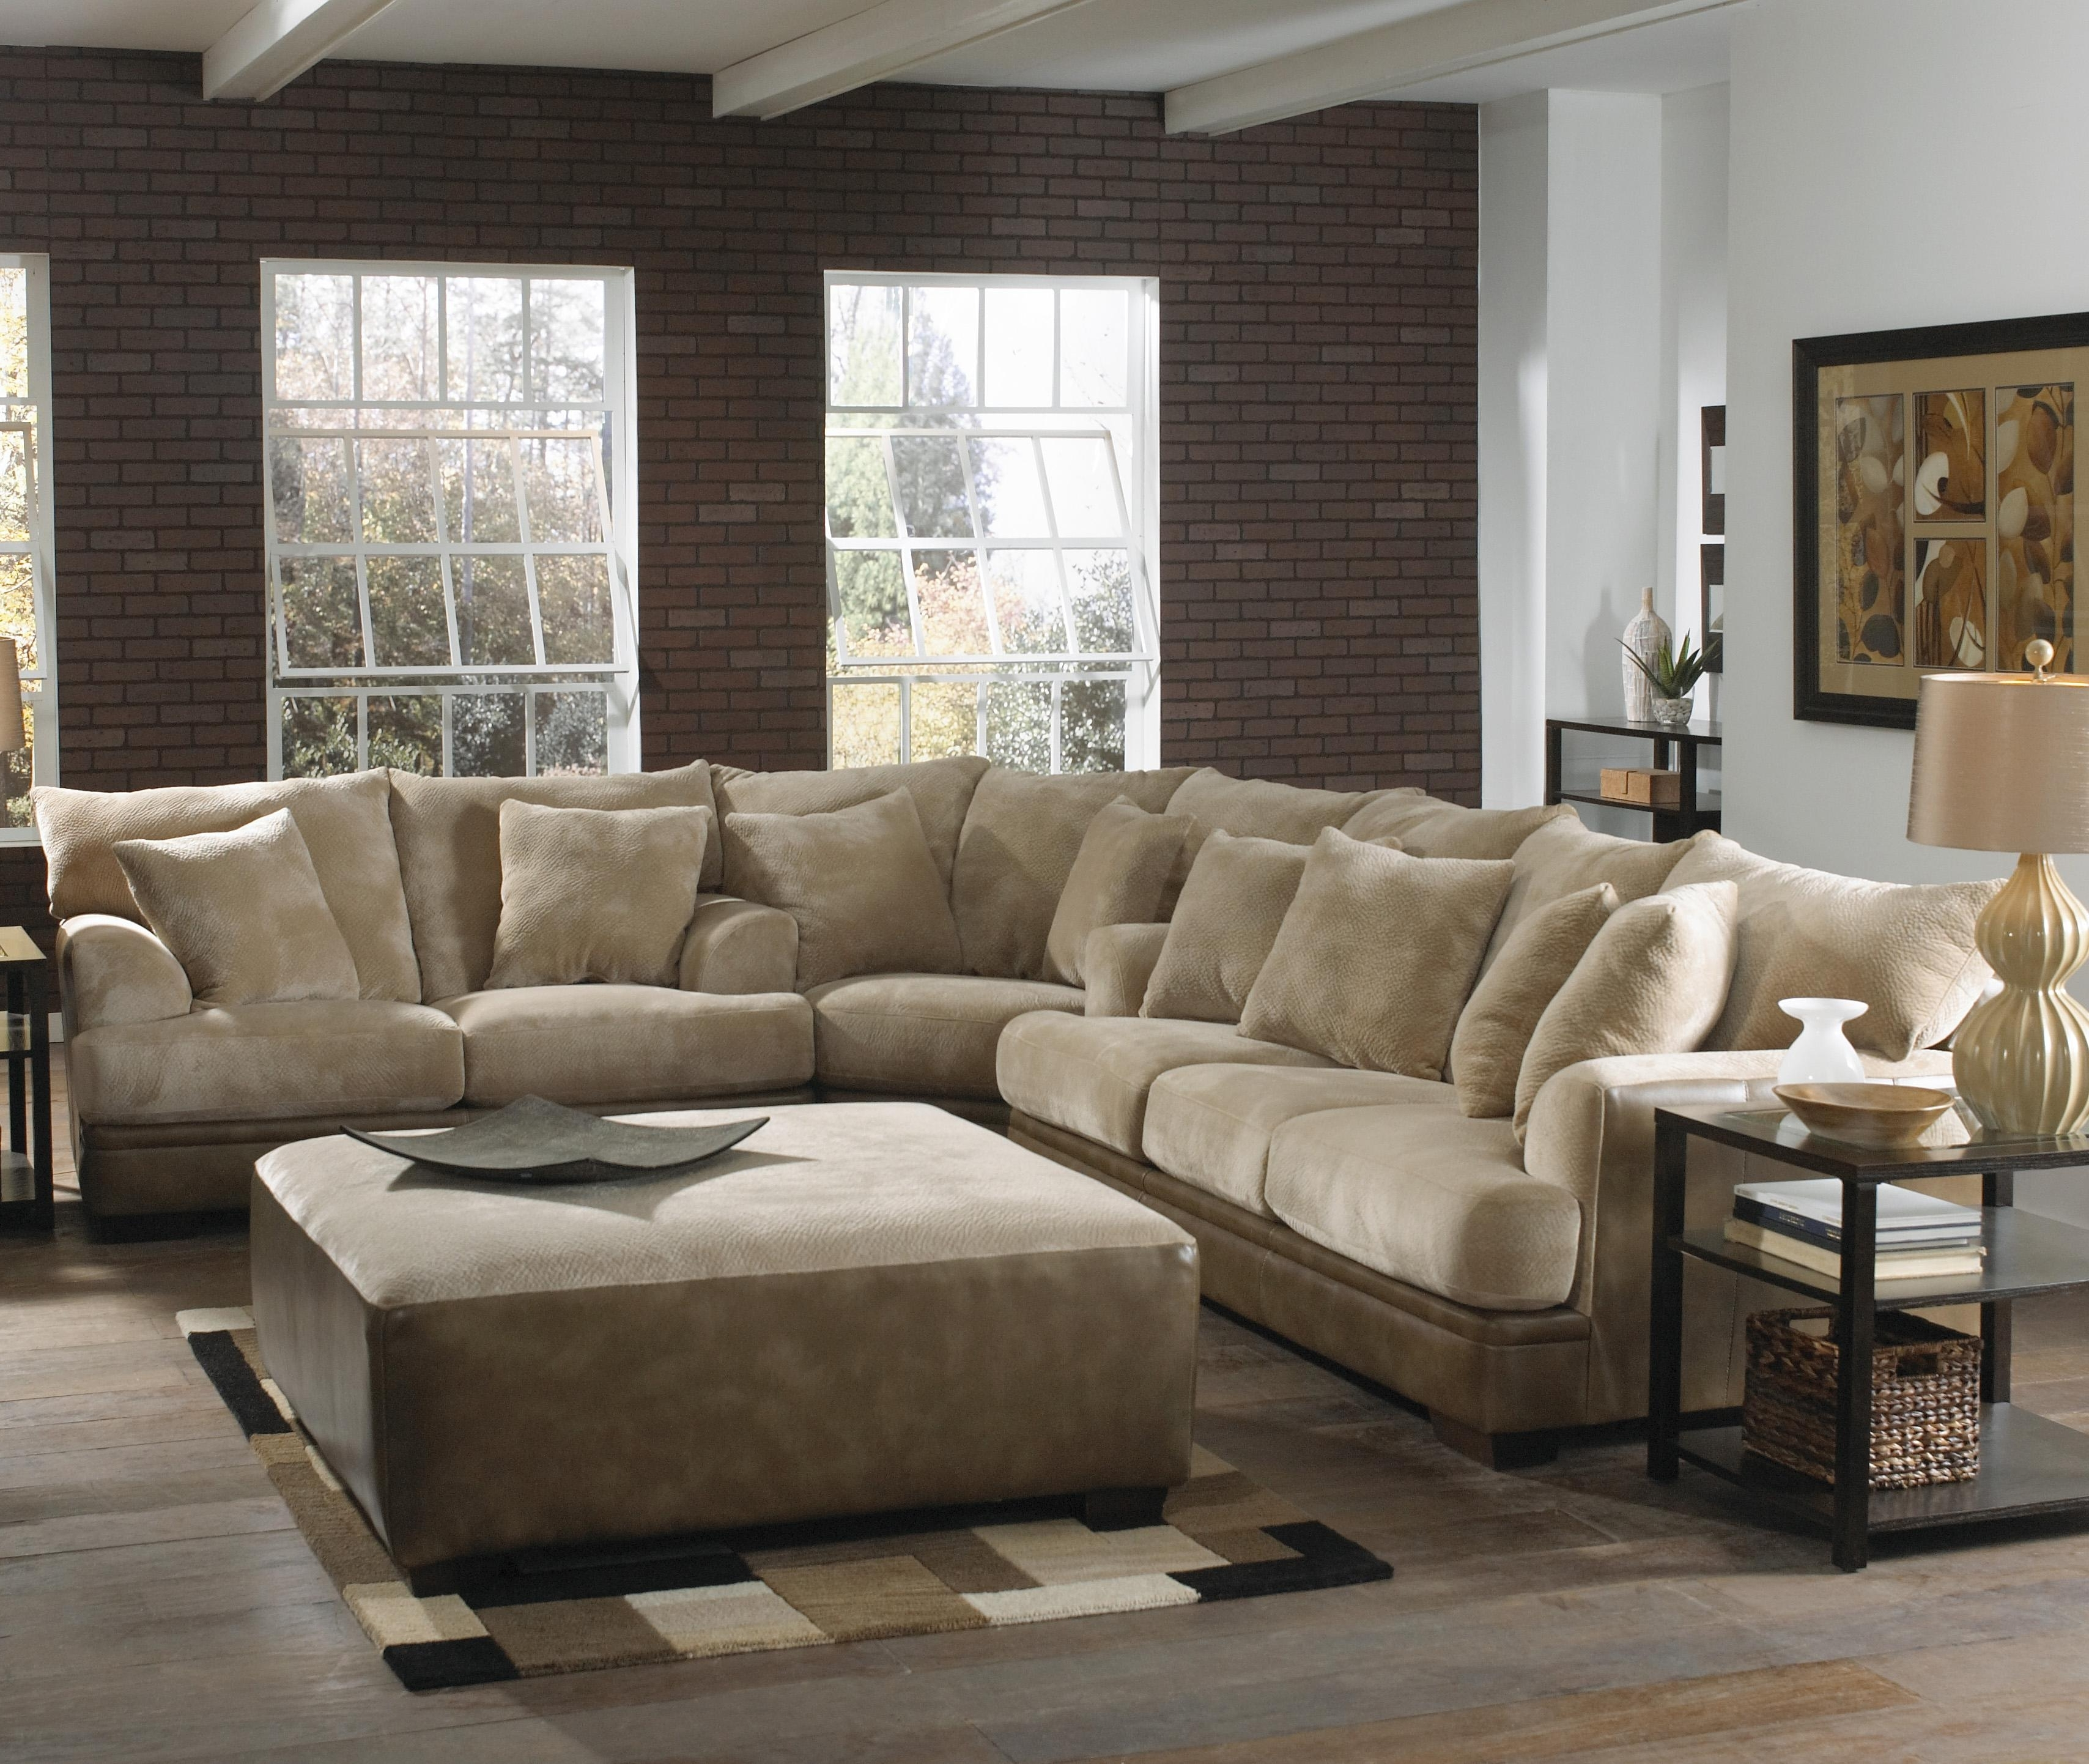 2018 The Brick Sectional Sofas Within 7 Seat Sectional Sofa – Cleanupflorida (View 1 of 20)